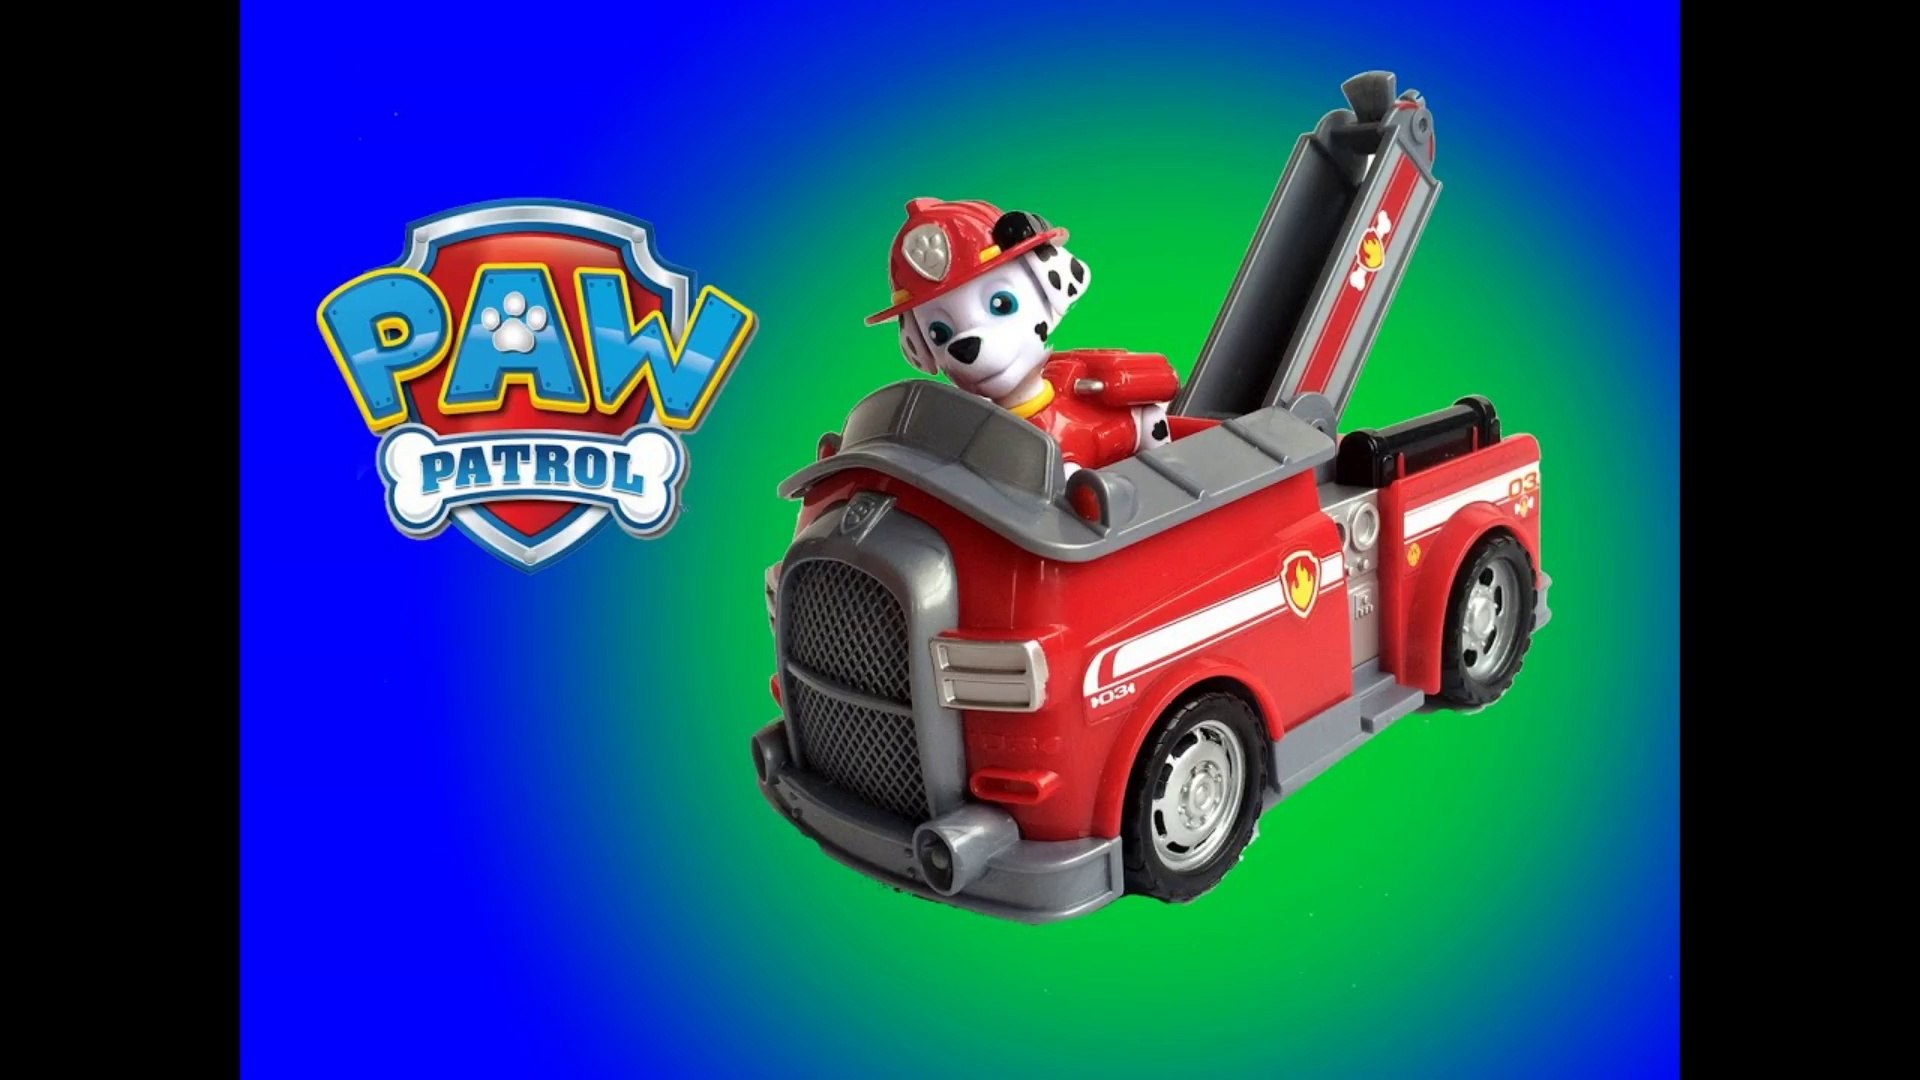 Nickelodeon Paw Patrol Marshall Fire Fightig Truck - Unboxing Demo Review